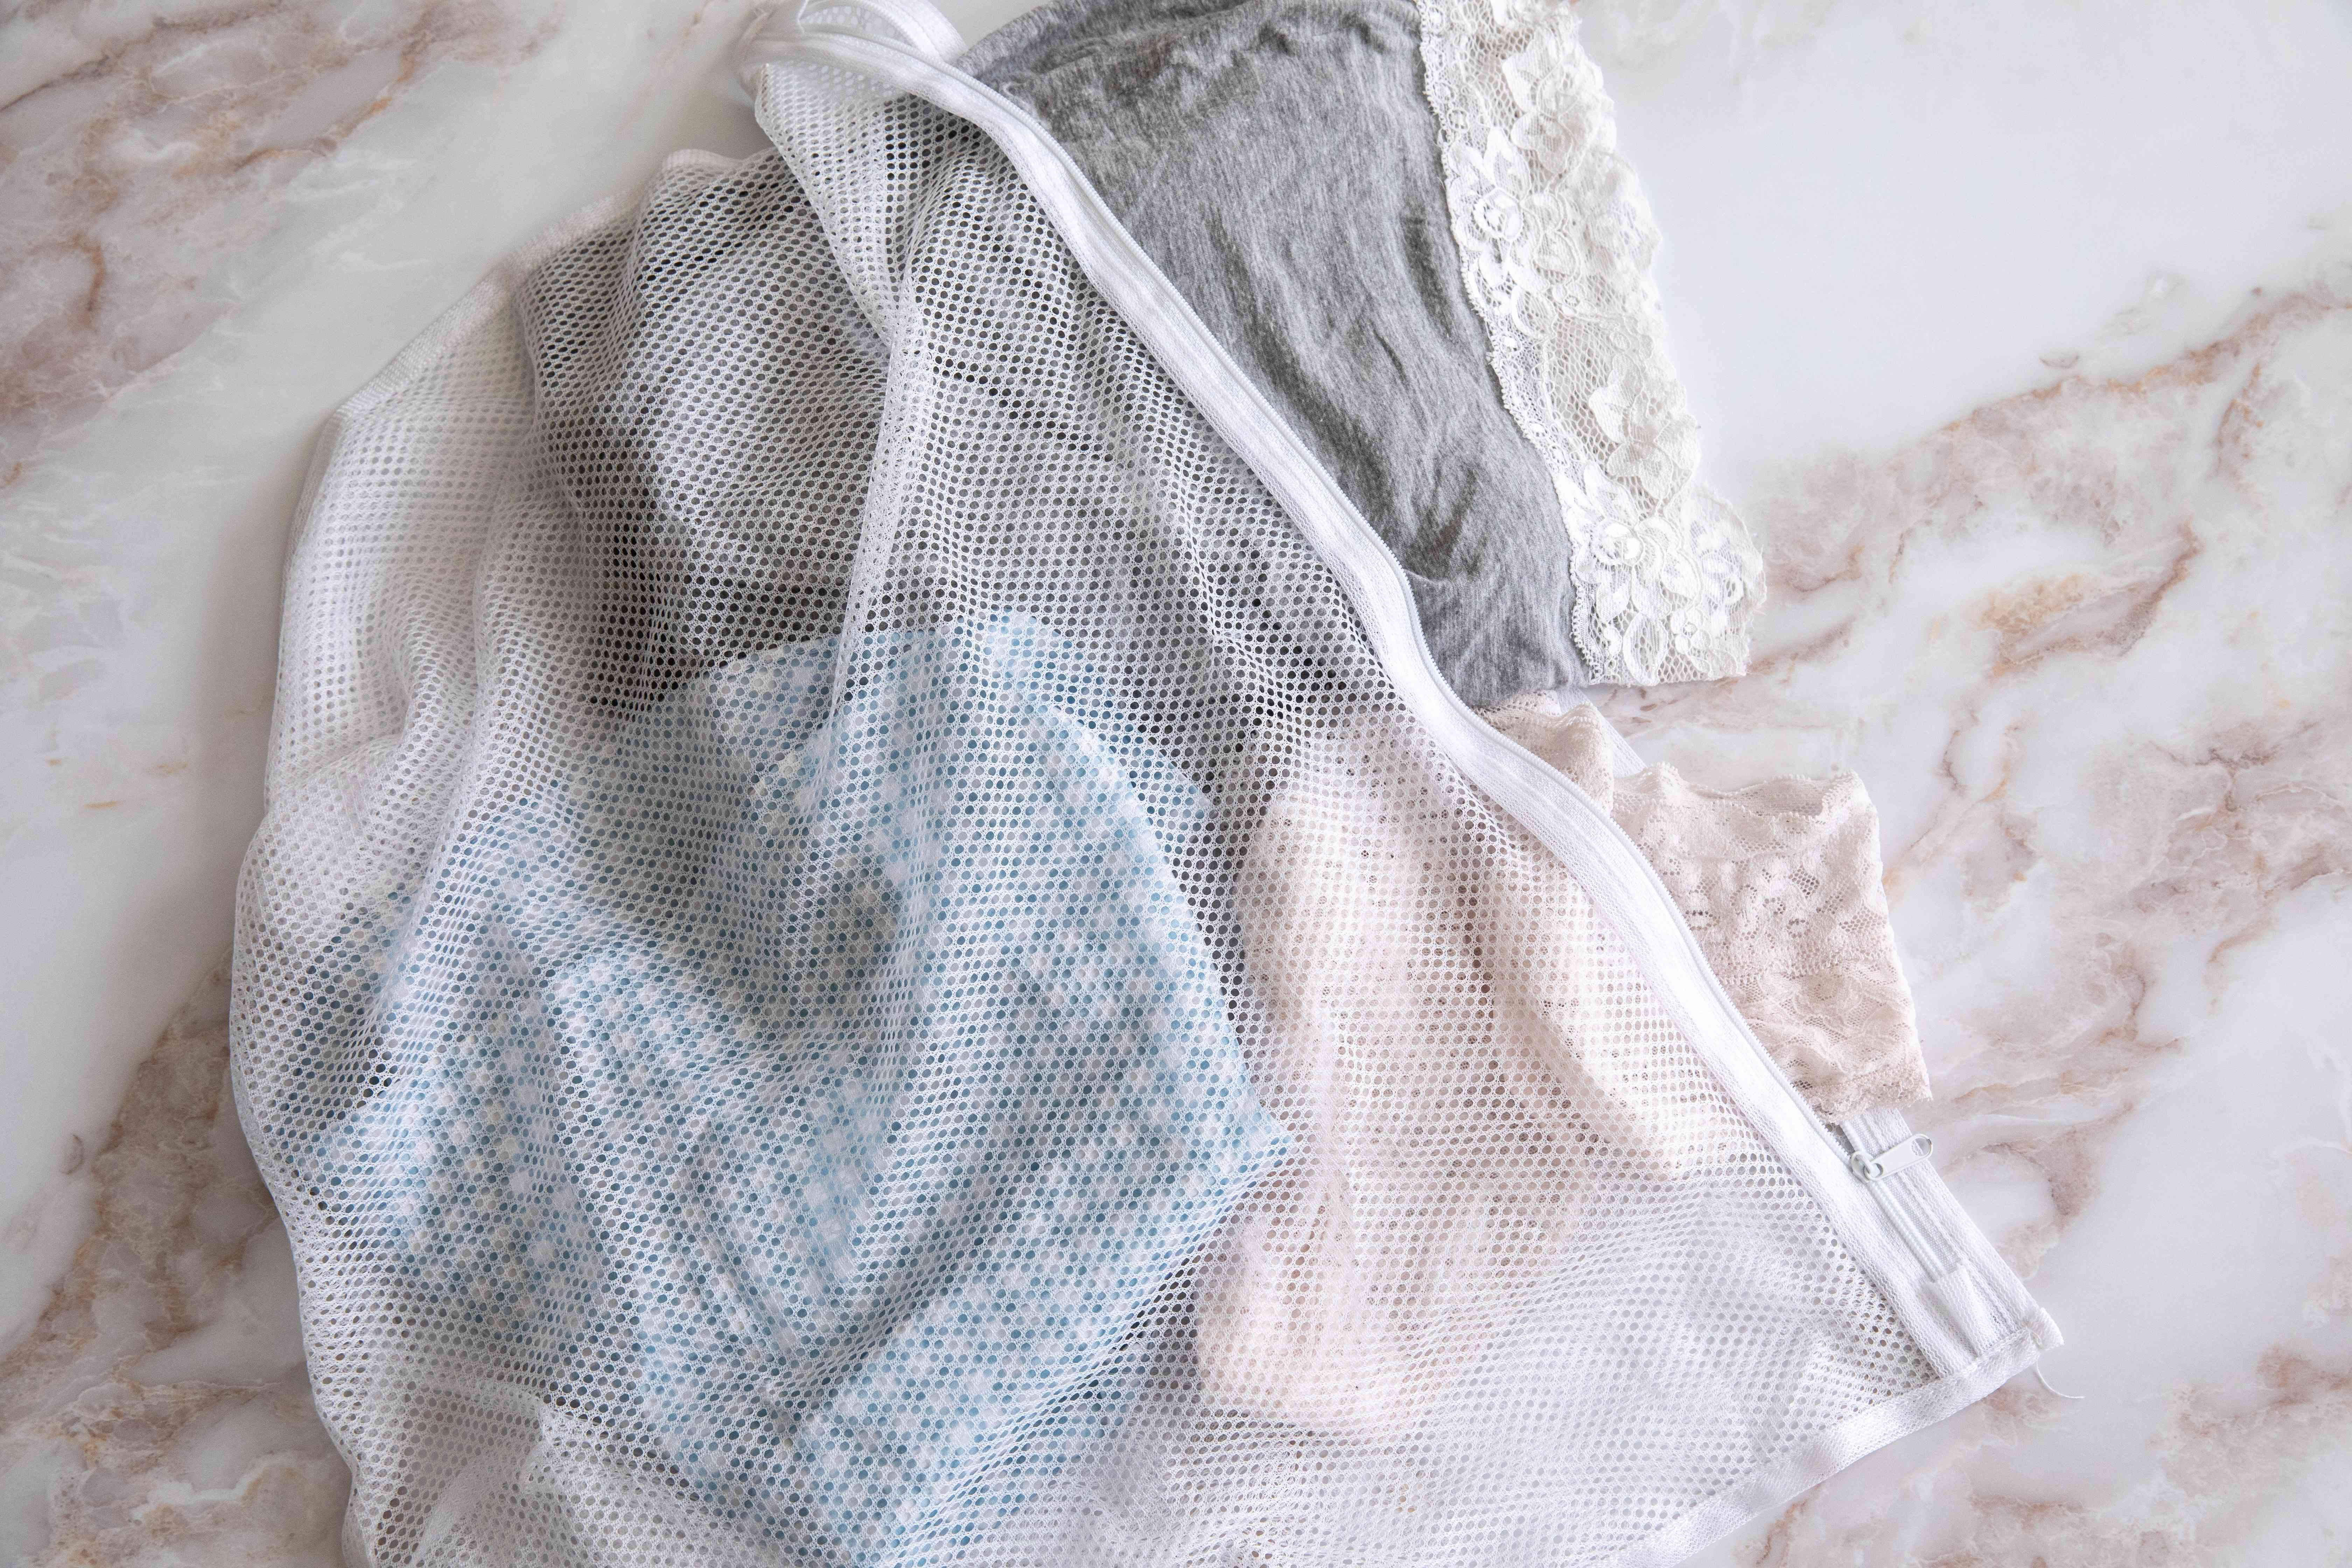 Mesh laundry bag with delicate underwear and clothing